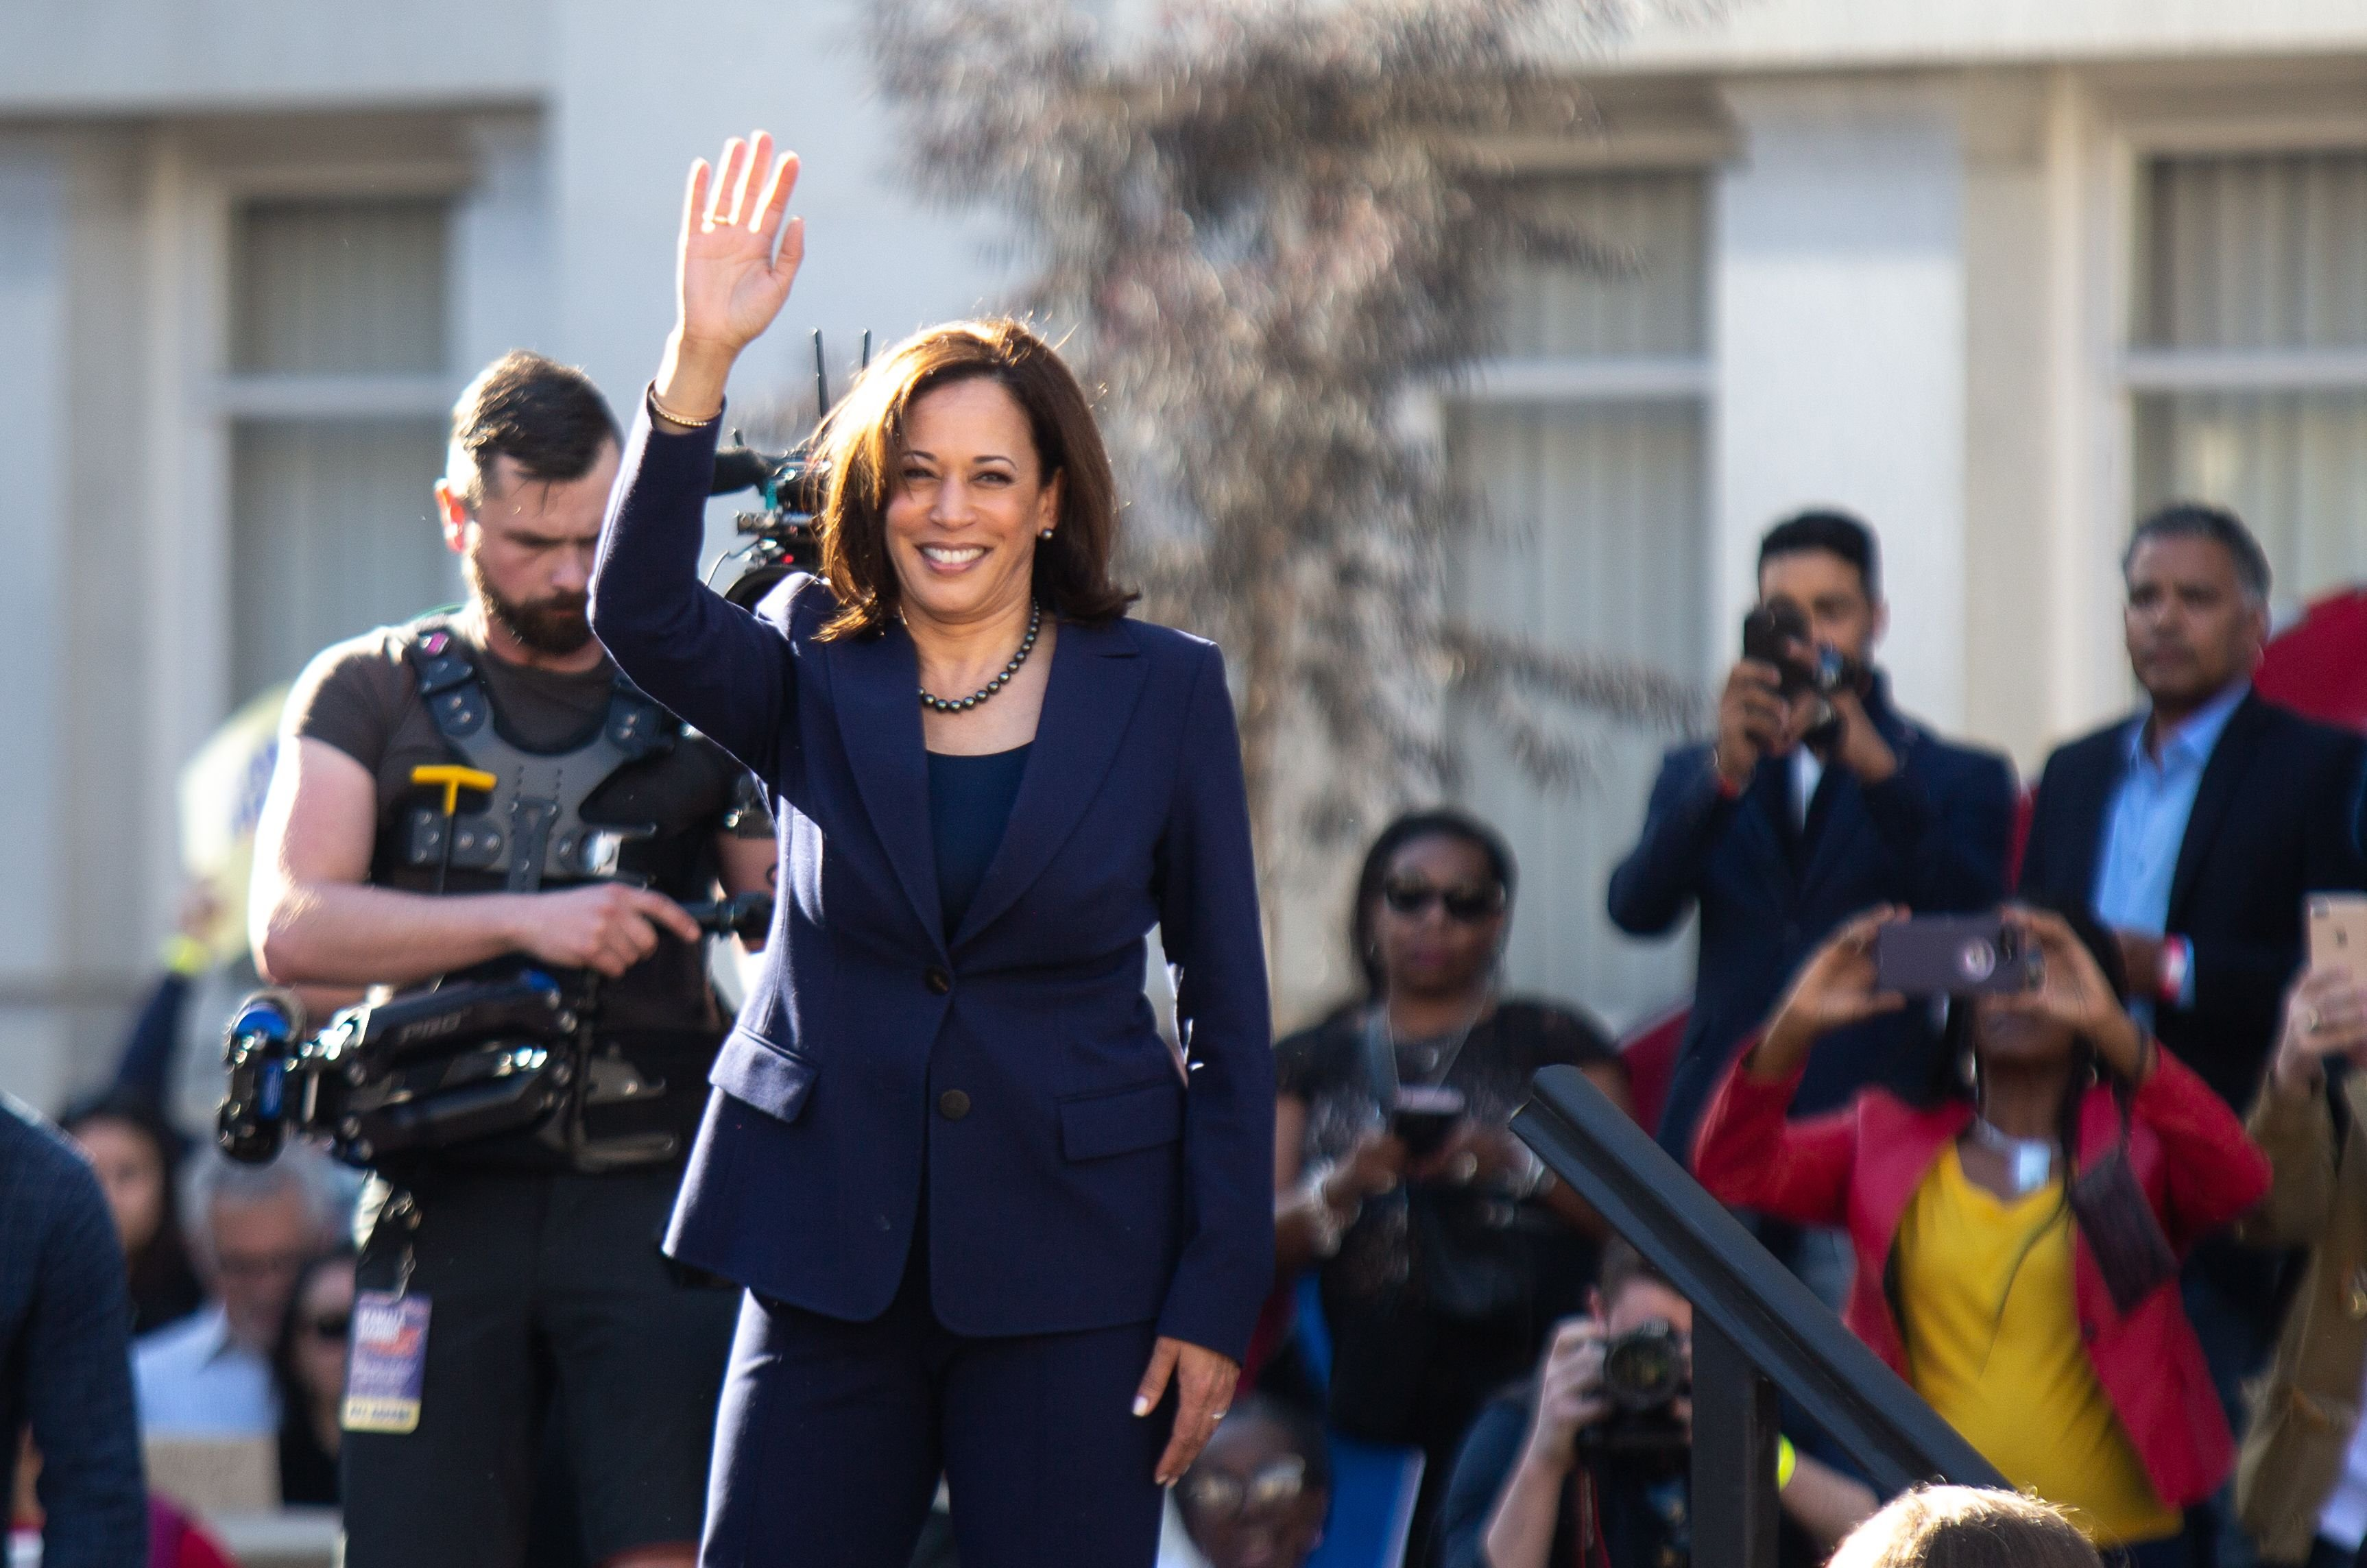 Harris joins the 2020 Democratic ticket.